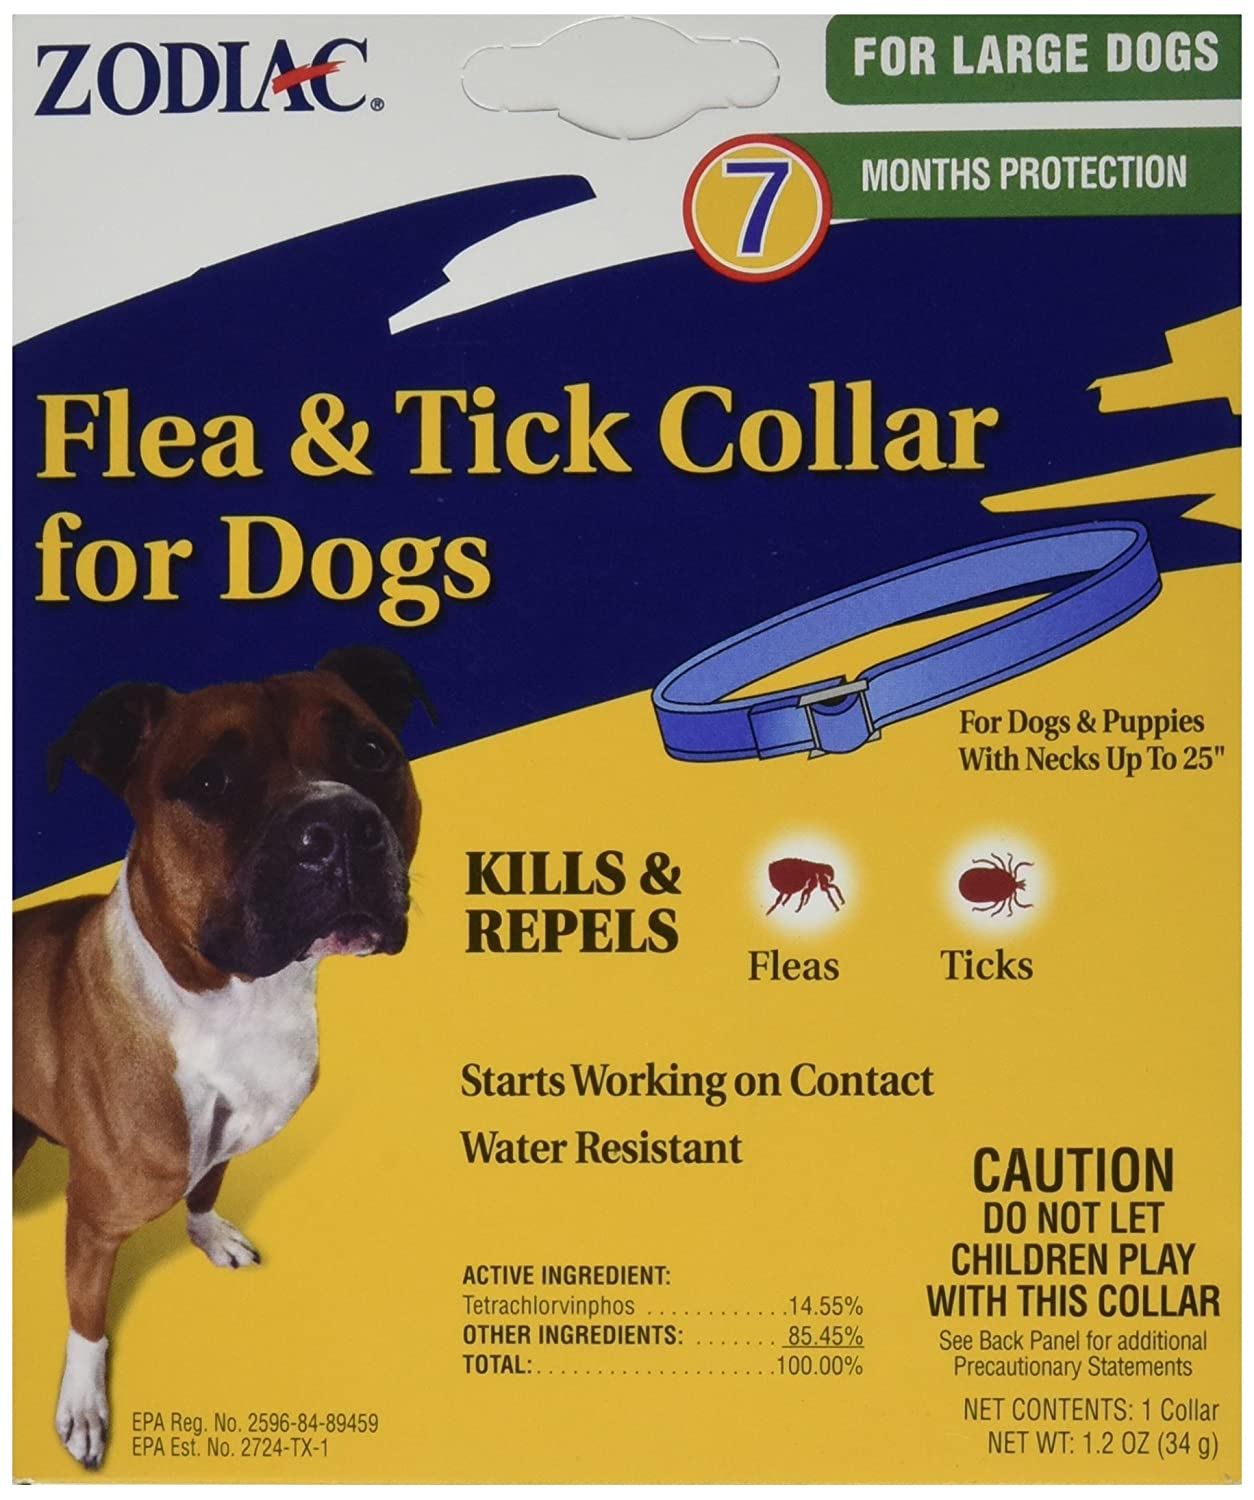 Amazoncom Zodiac Flea And Tick Collar For Large Dogs Pet Supplies